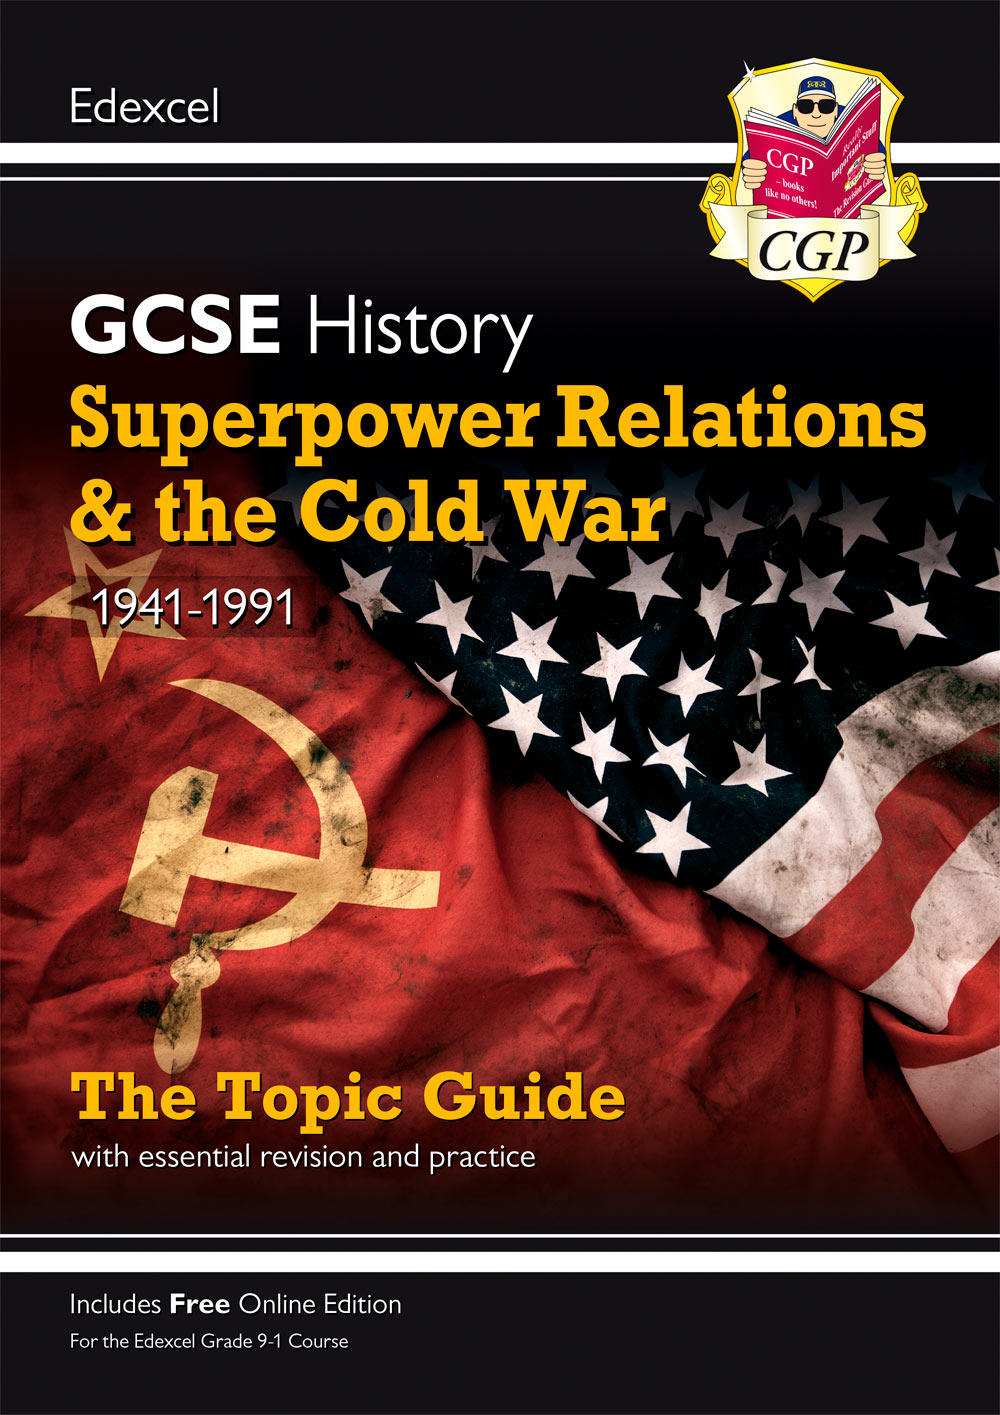 HECWO41 - New Grade 9-1 GCSE History Edexcel Topic Guide - Superpower Relations and the Cold War, 19